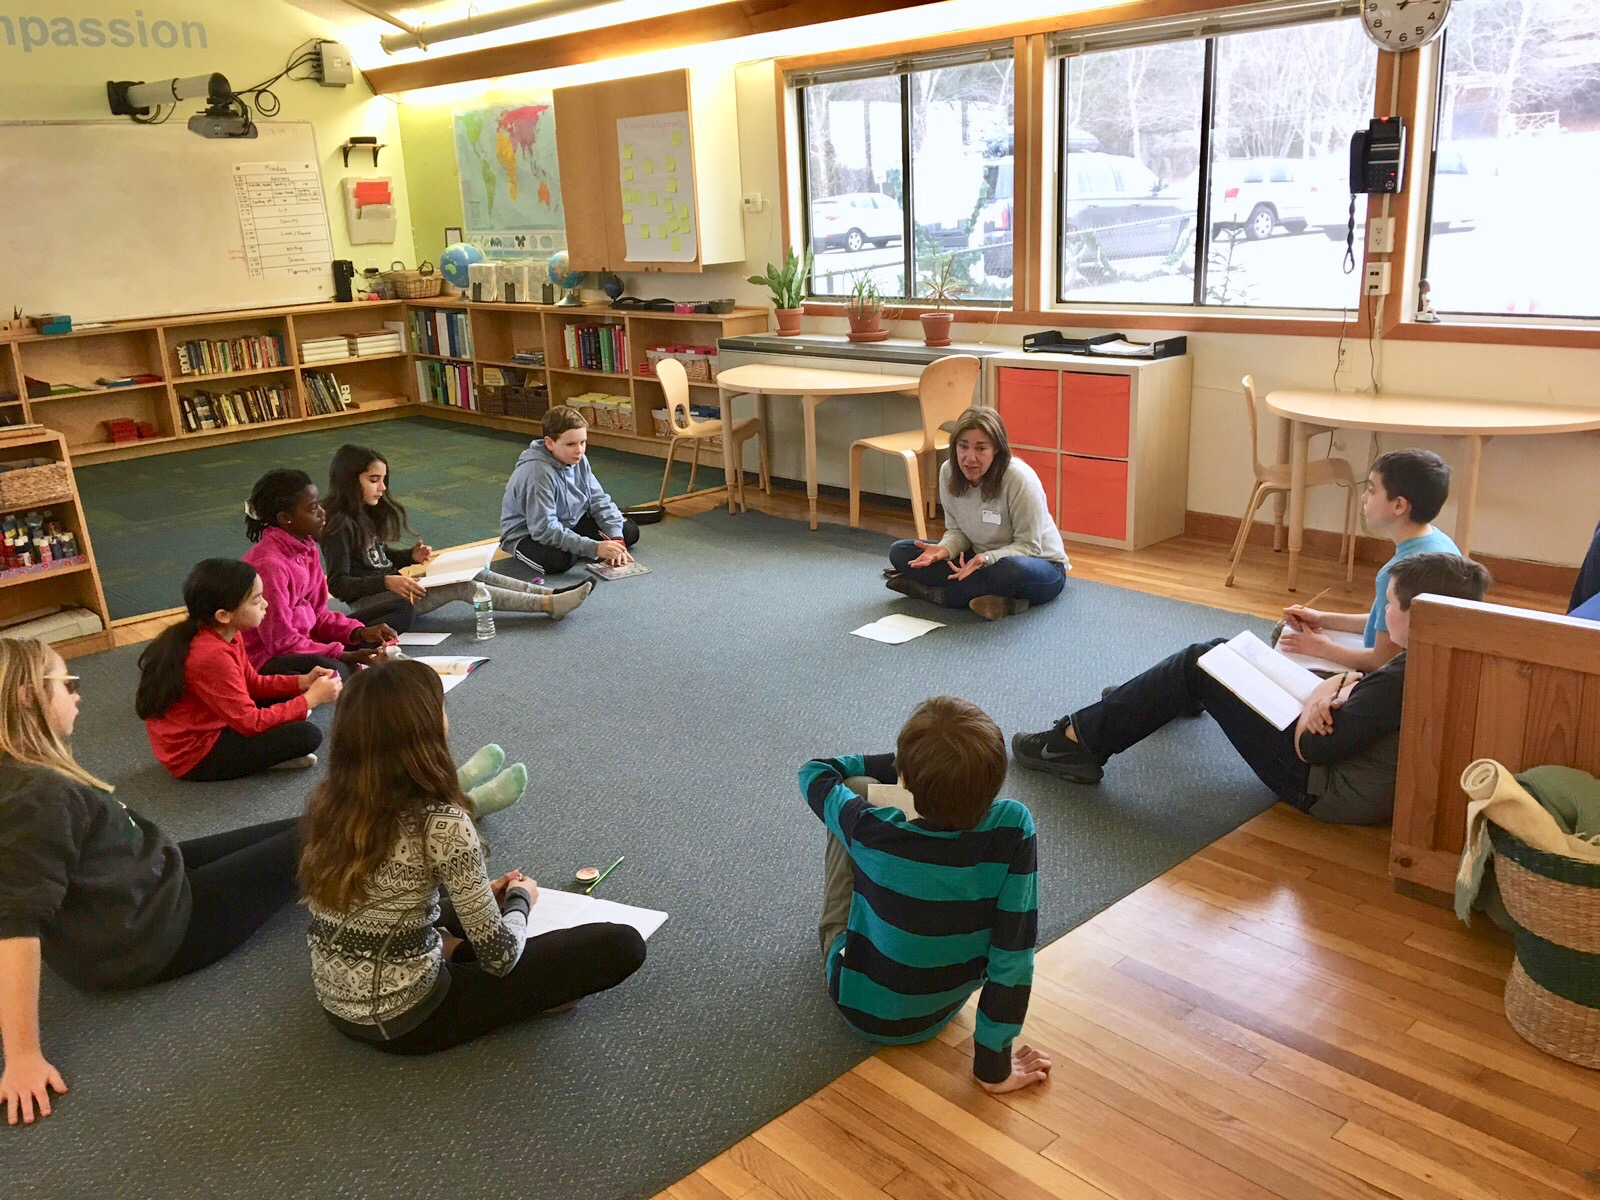 Board Member, Jill Cuomo, works with students at the Inly School as they learn more about our mission.